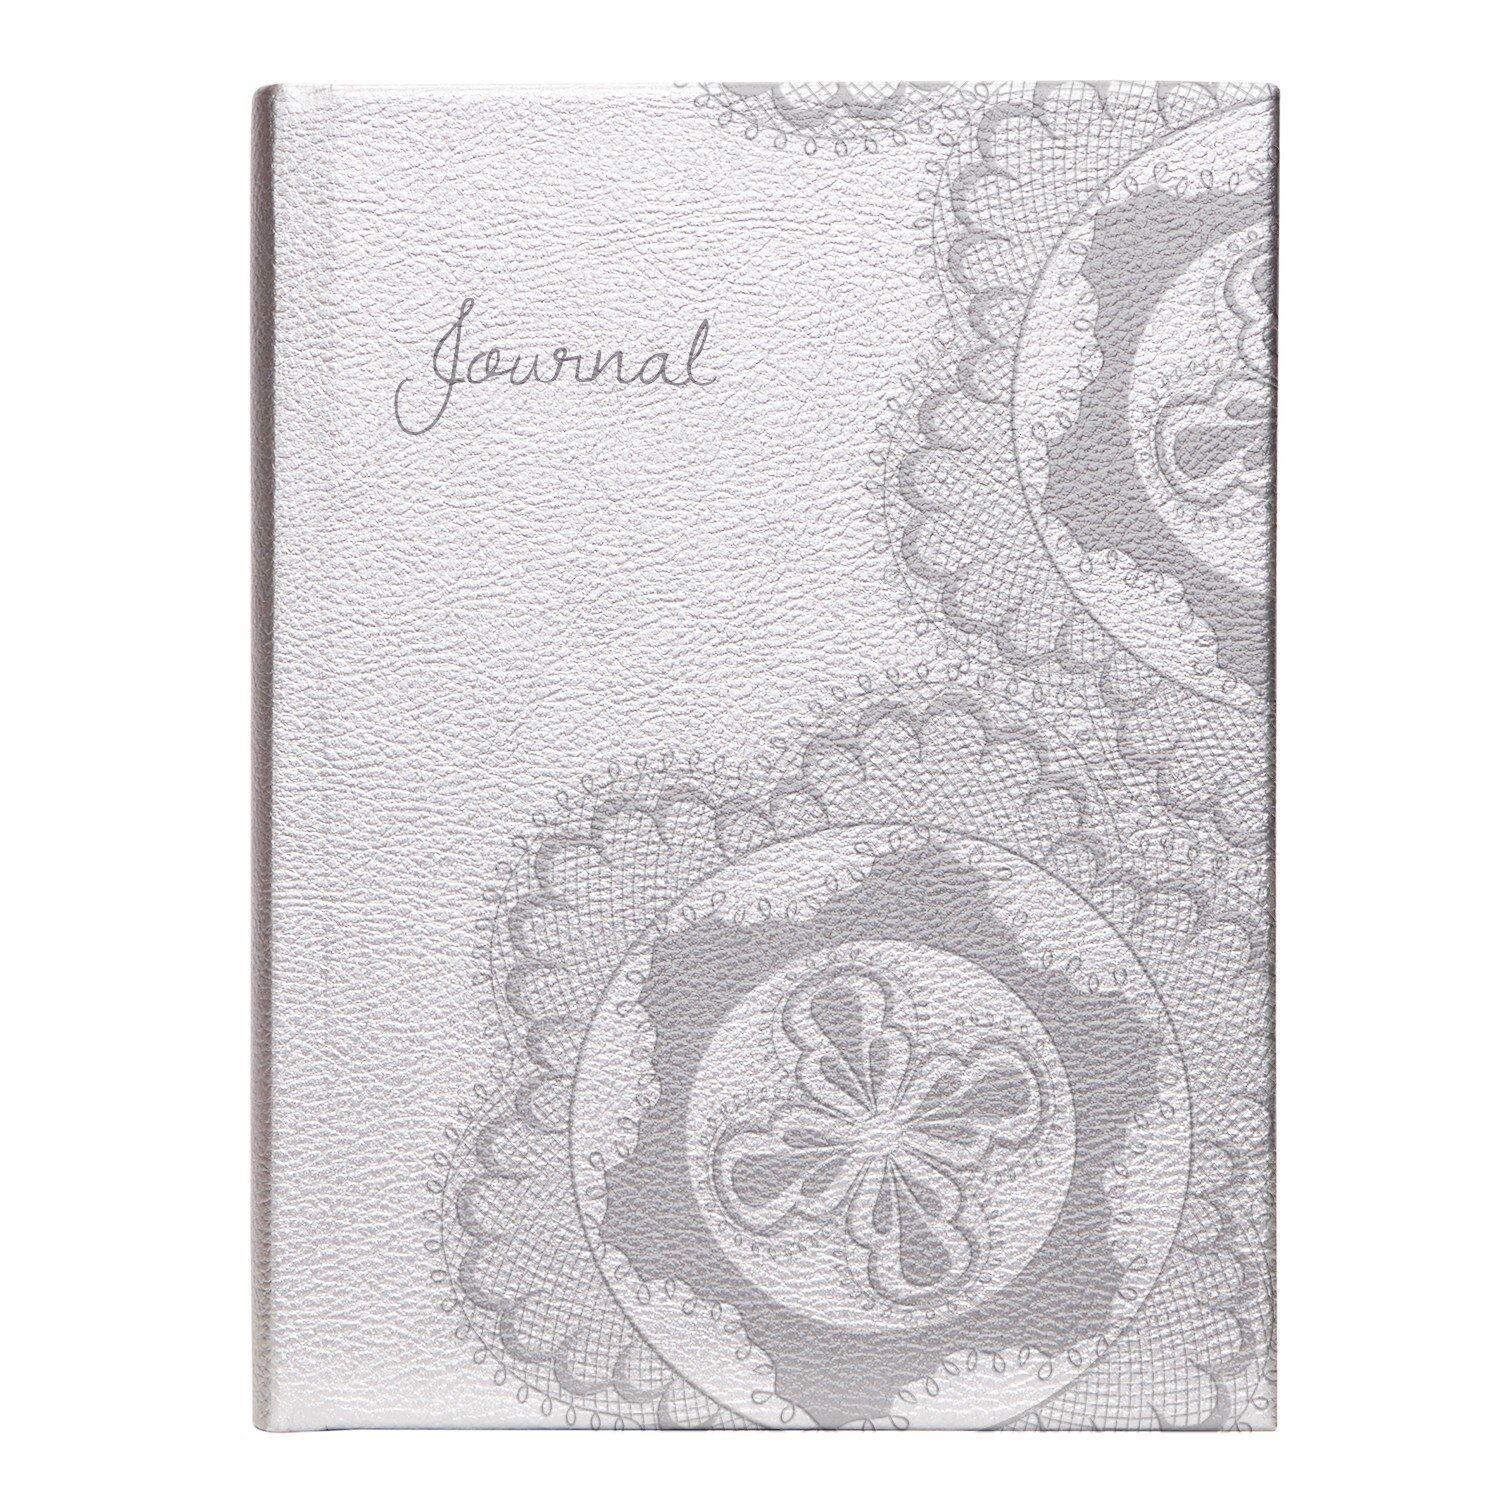 "alt=""Silver Regalia bound personal journal"""